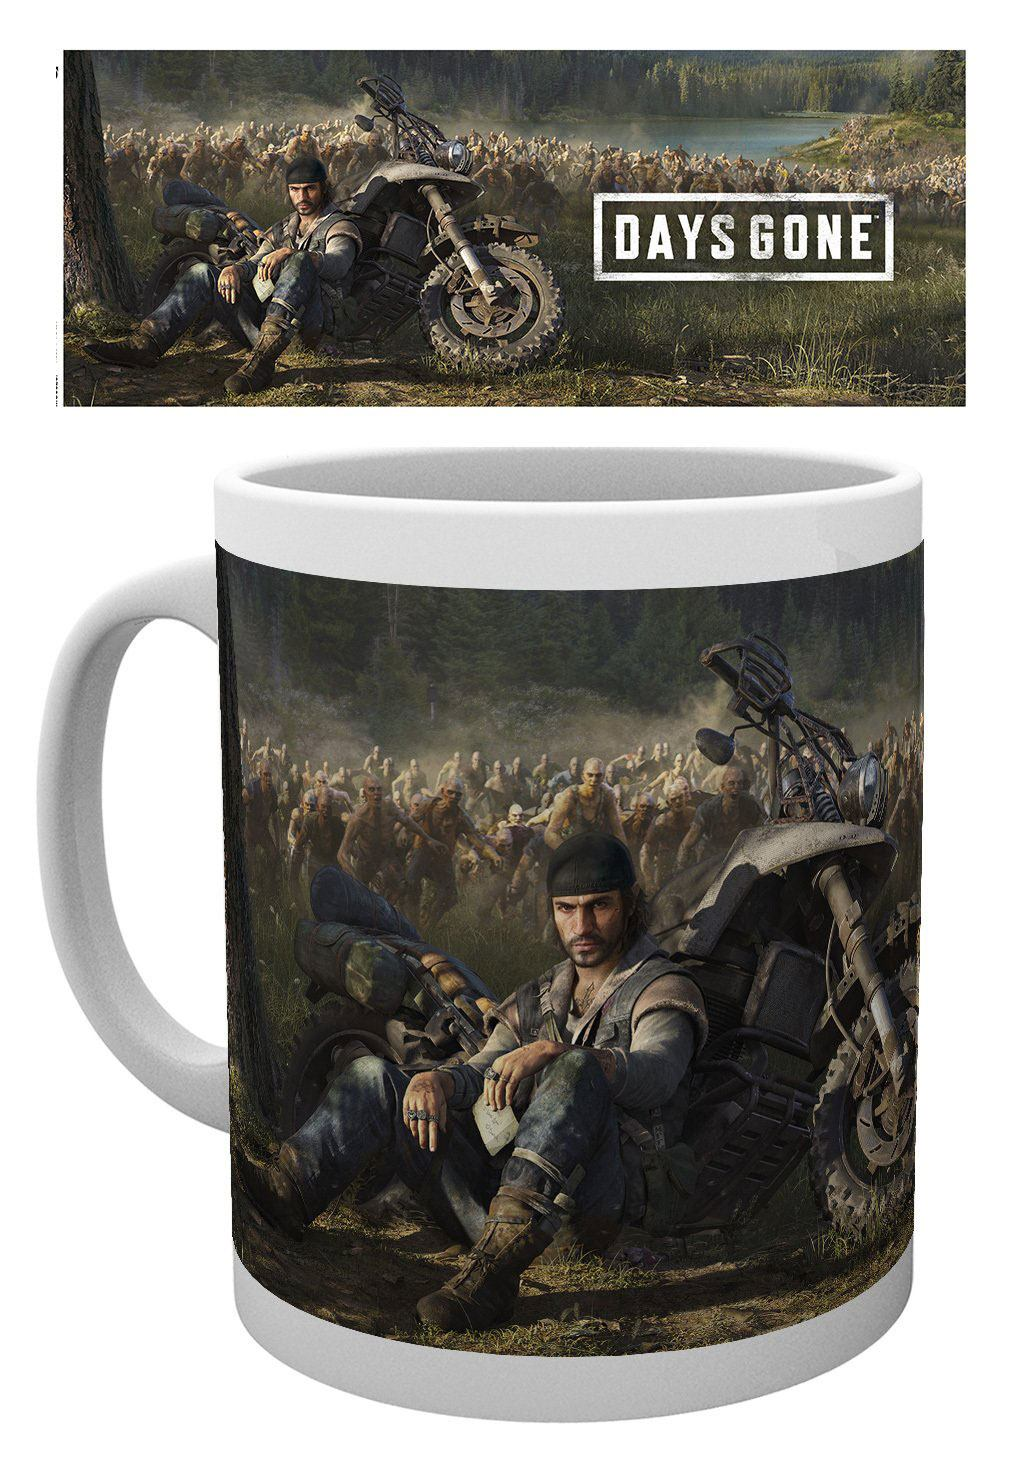 Days Gone Mug Bike